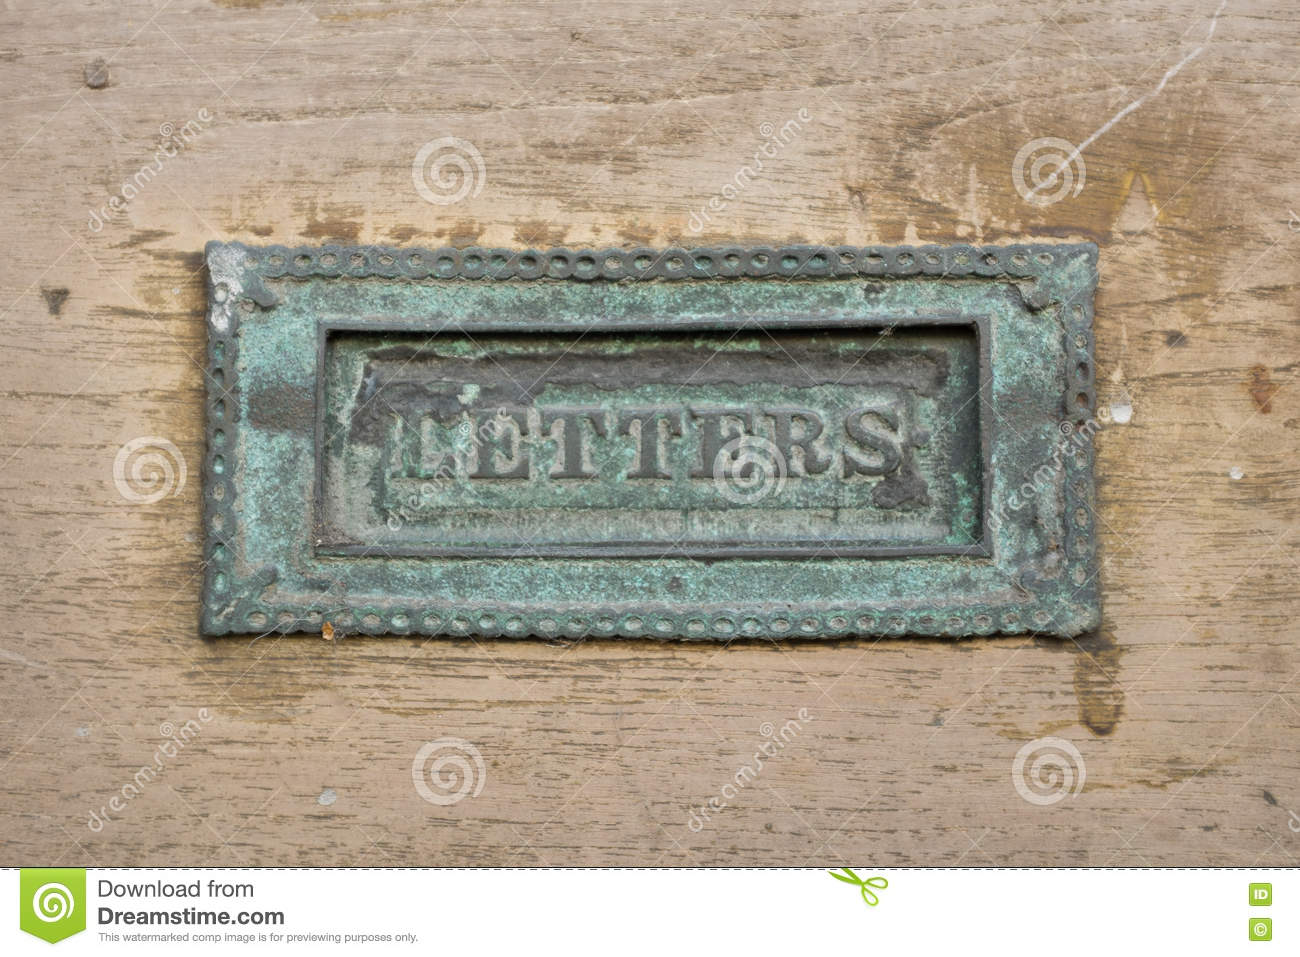 Old letter box stock image image of pattern wood letters 81338195 download old letter box stock image image of pattern wood letters spiritdancerdesigns Images